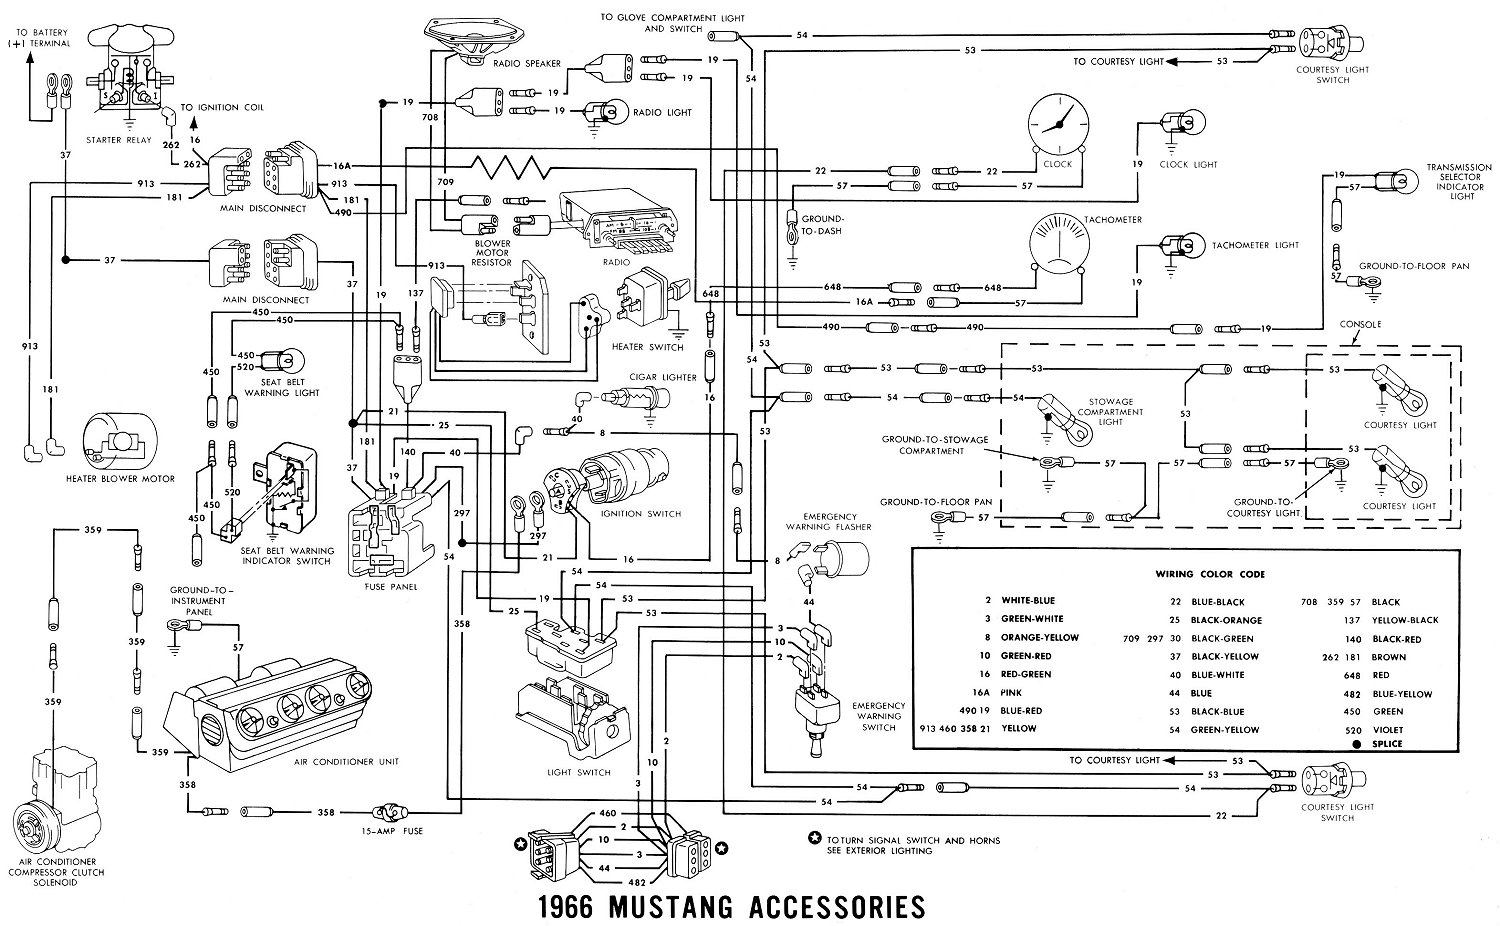 Ford Ignition Installation Diagram 1966 Mustang Wiring Diagrams Average Joe Restoration Schematic